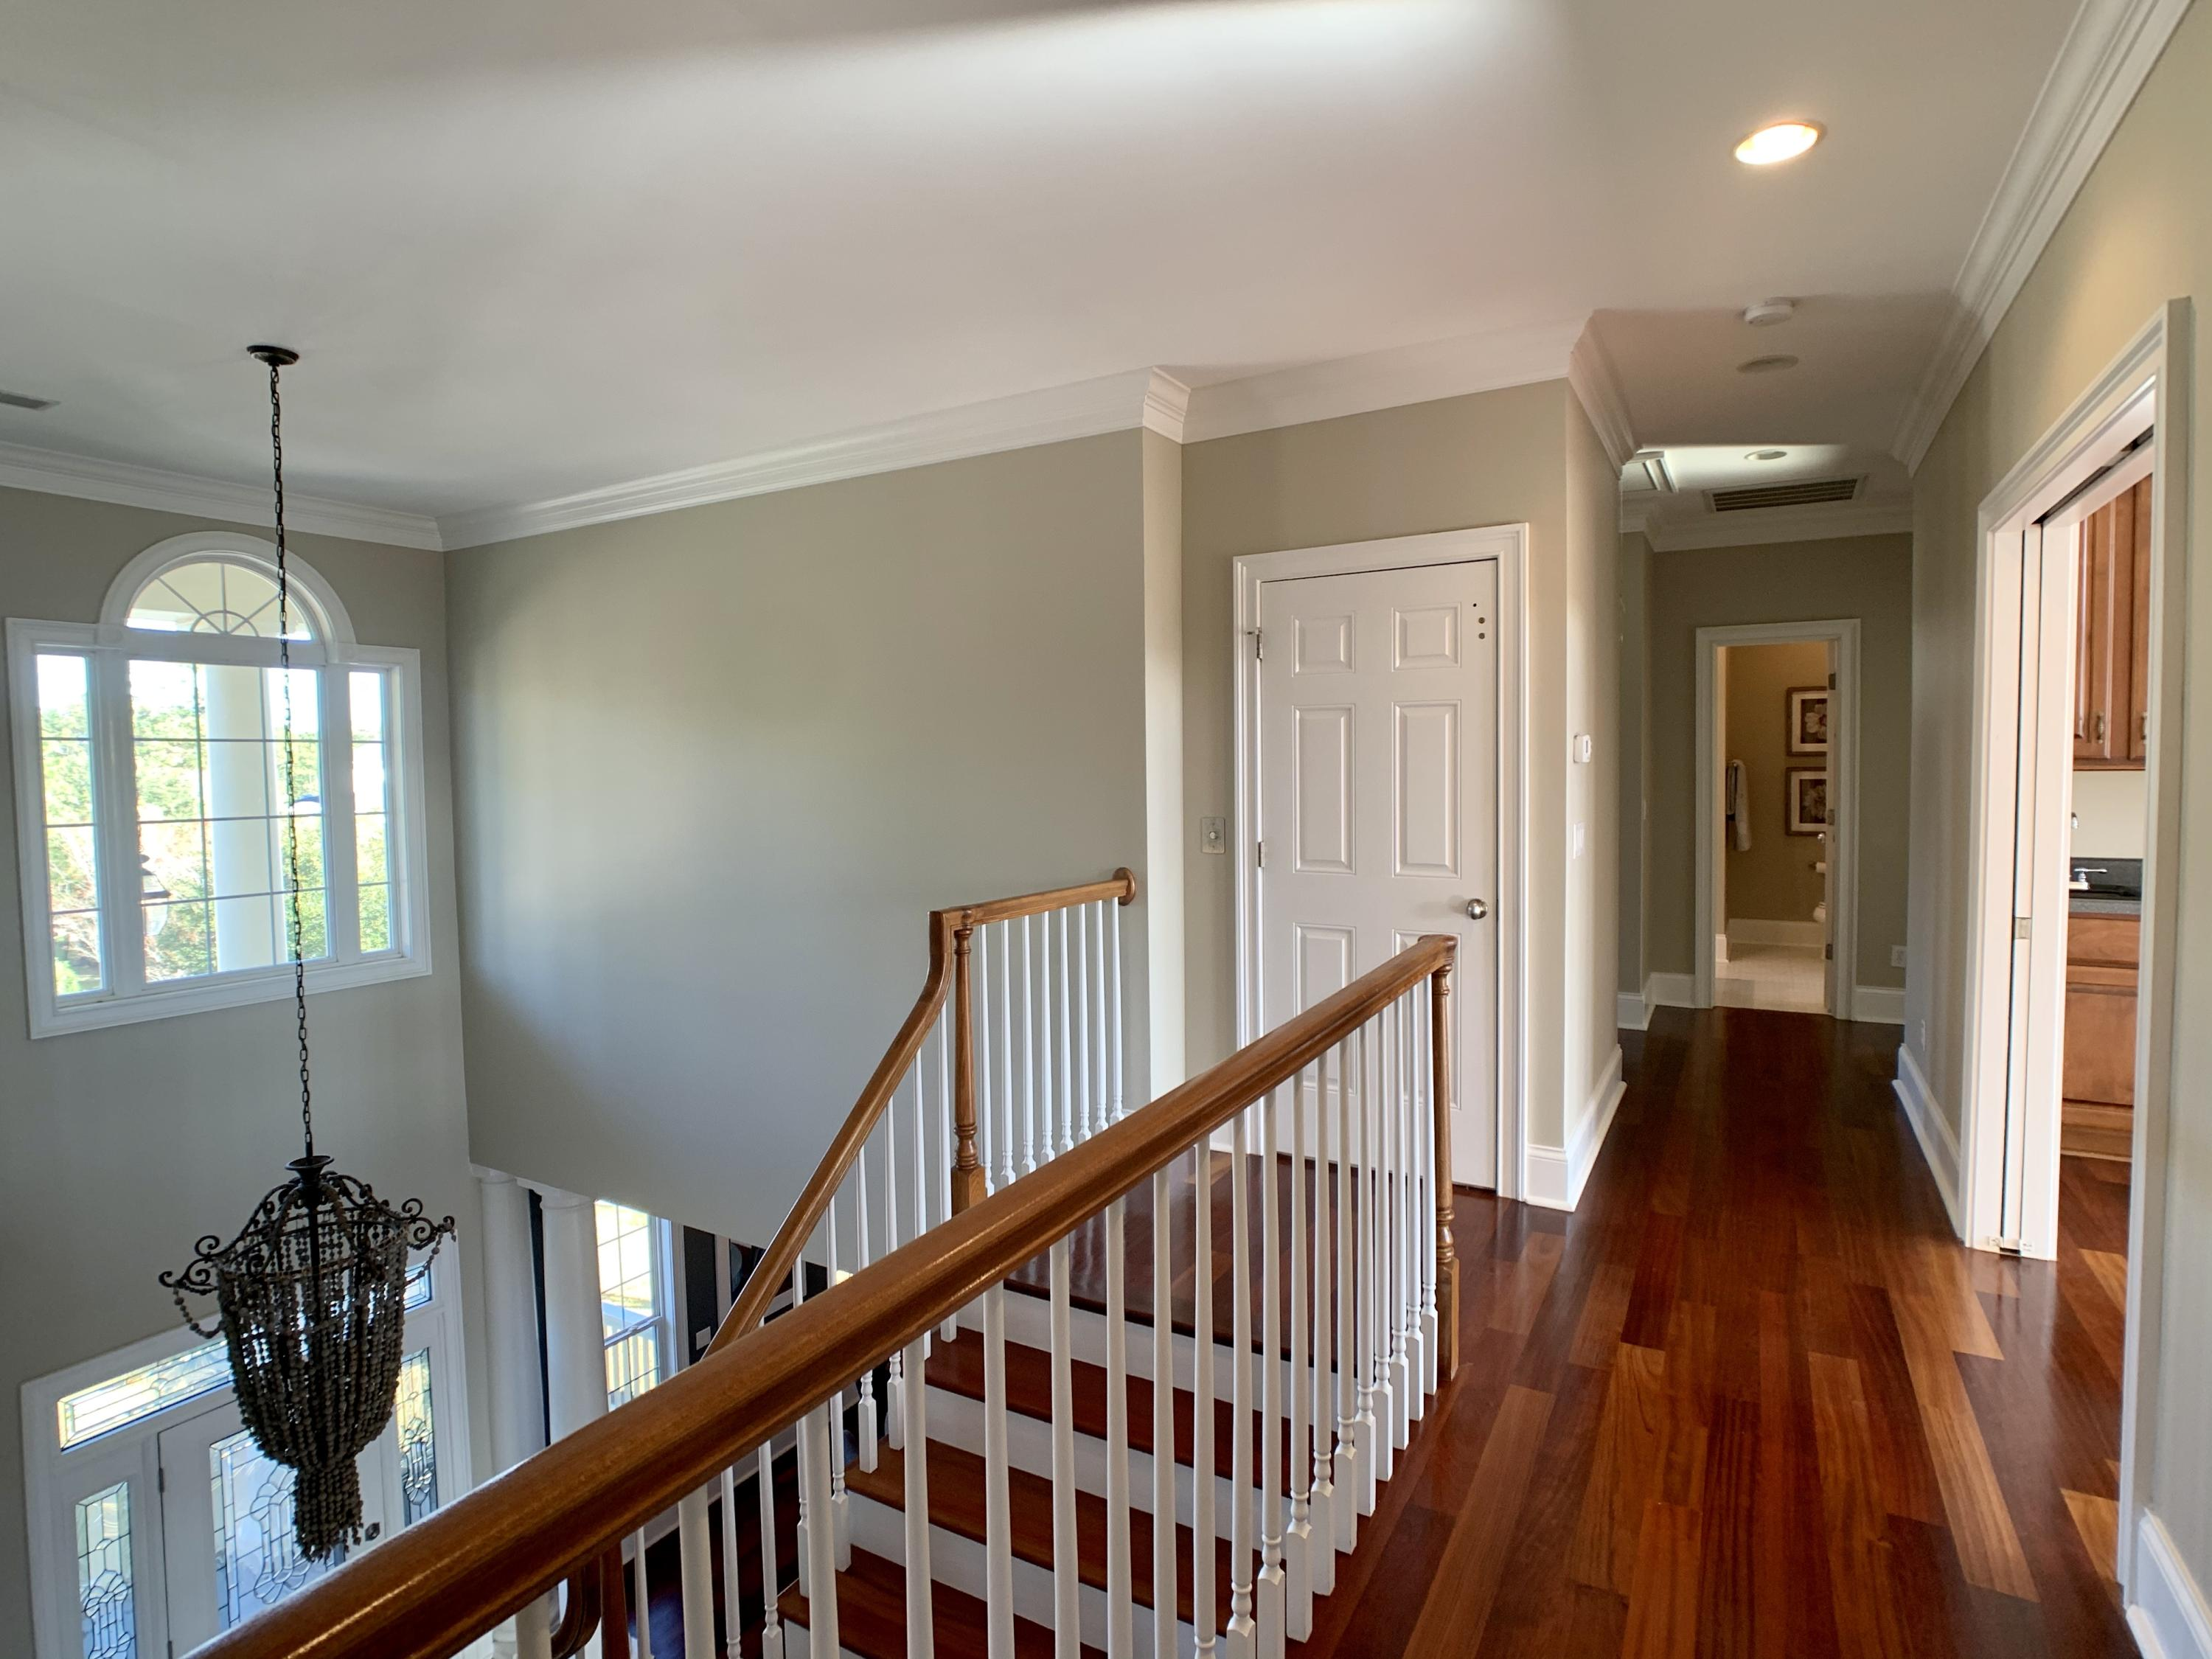 Rivertowne Country Club Homes For Sale - 2128 Breezy Point, Mount Pleasant, SC - 55